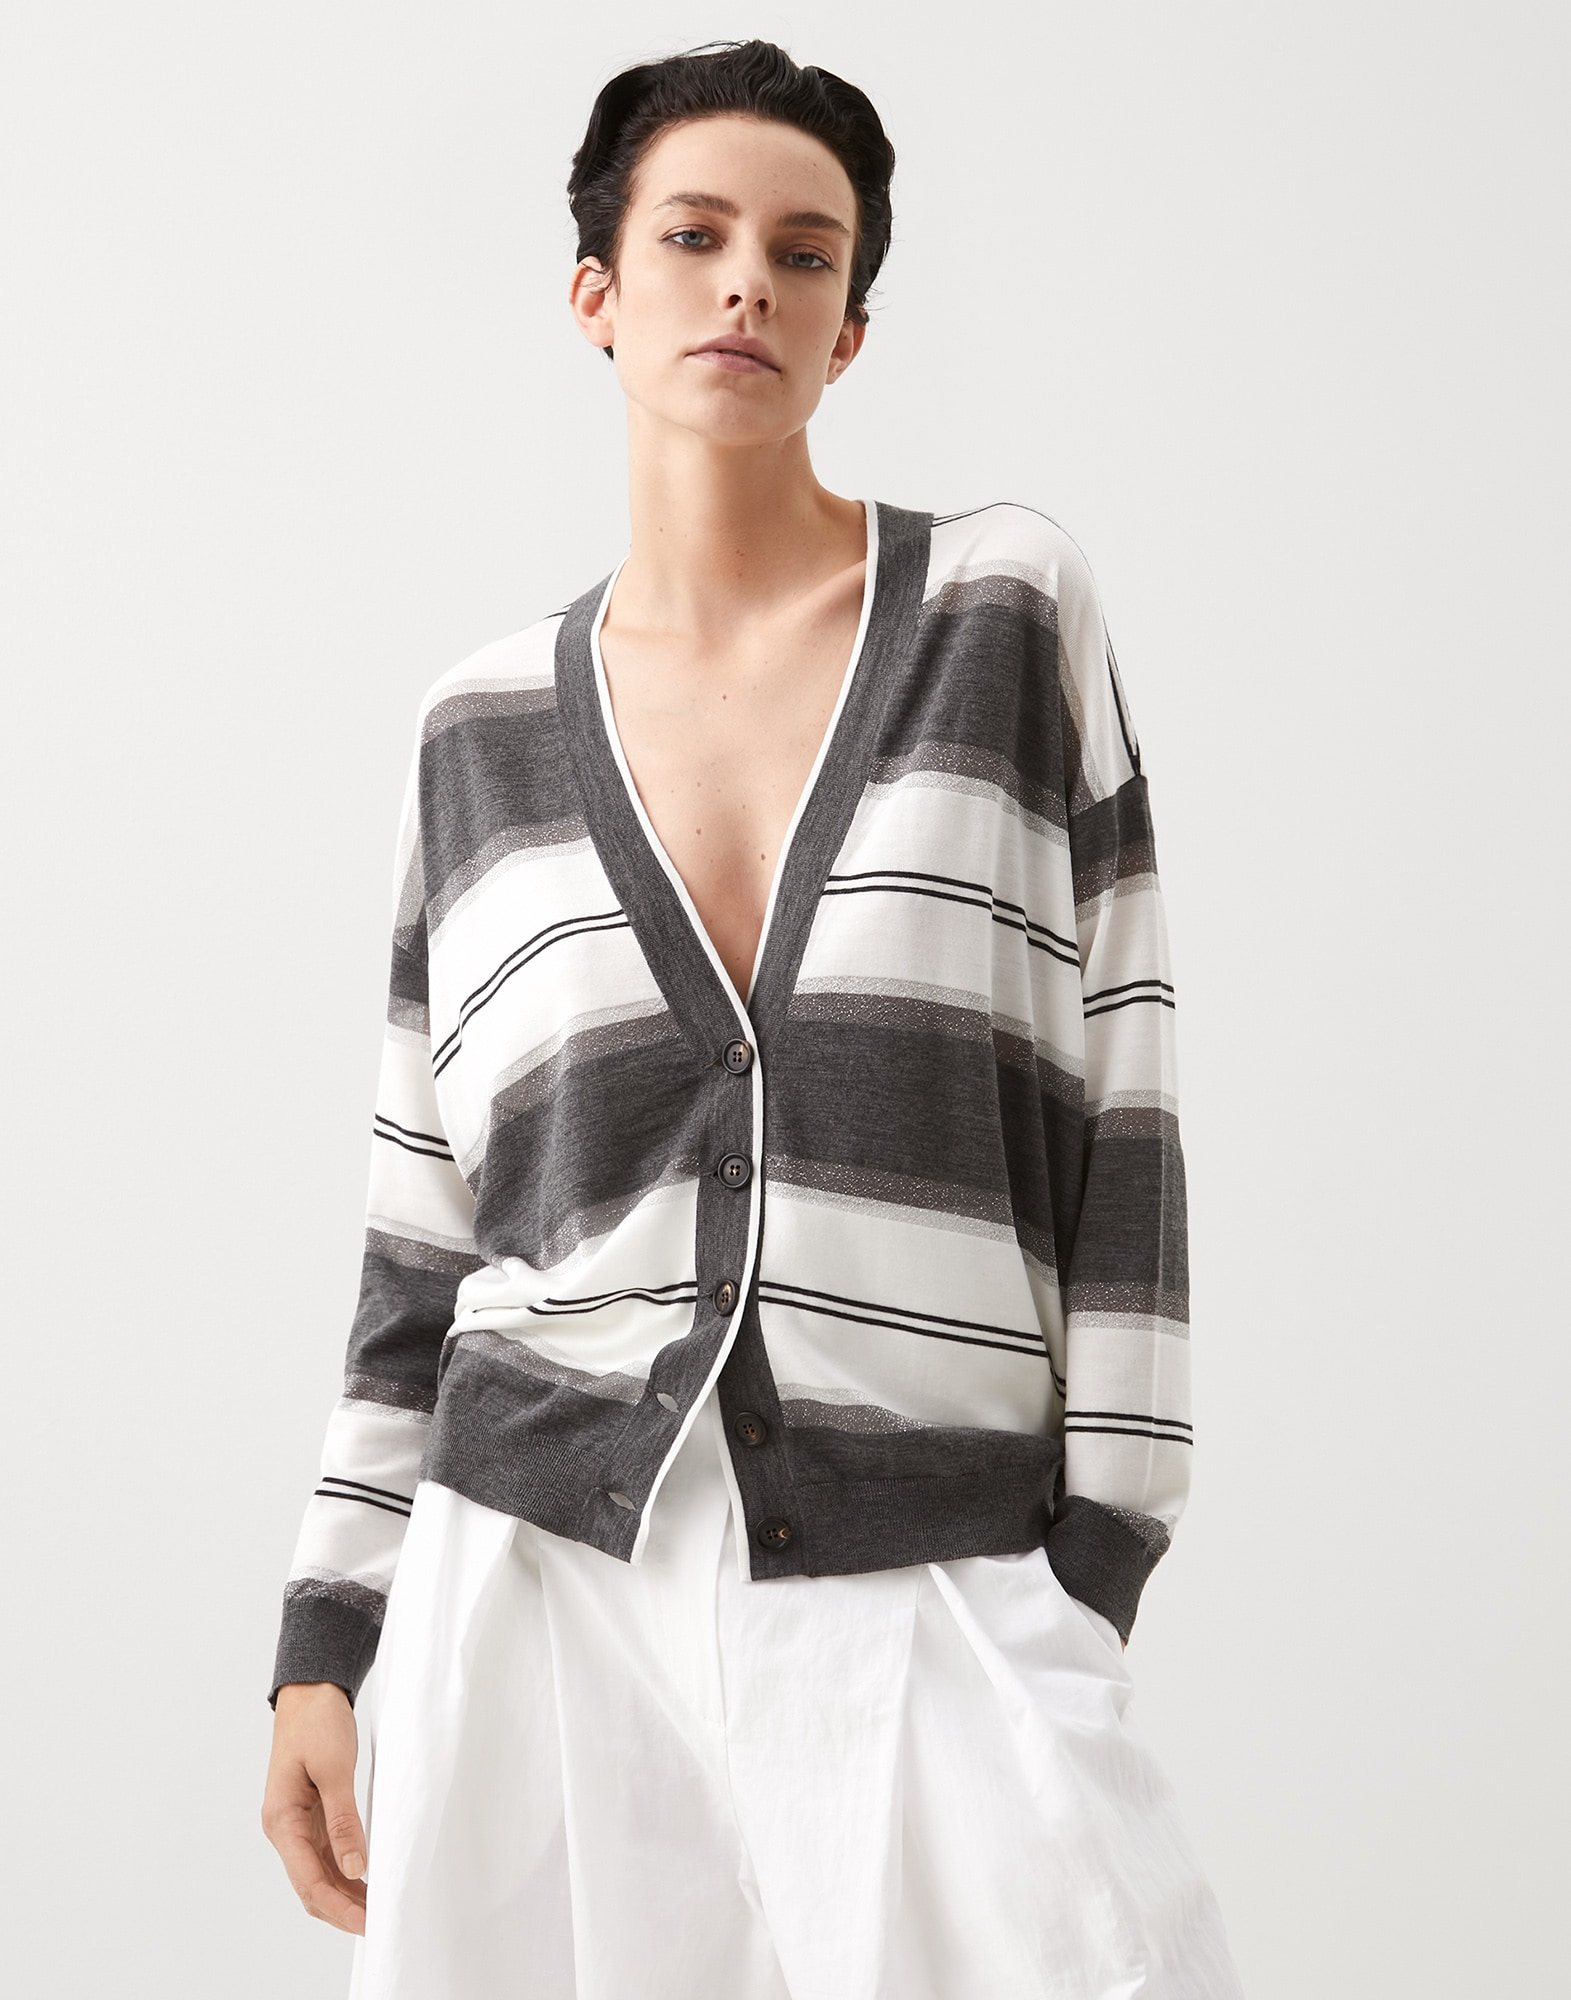 Cardigan - Front view